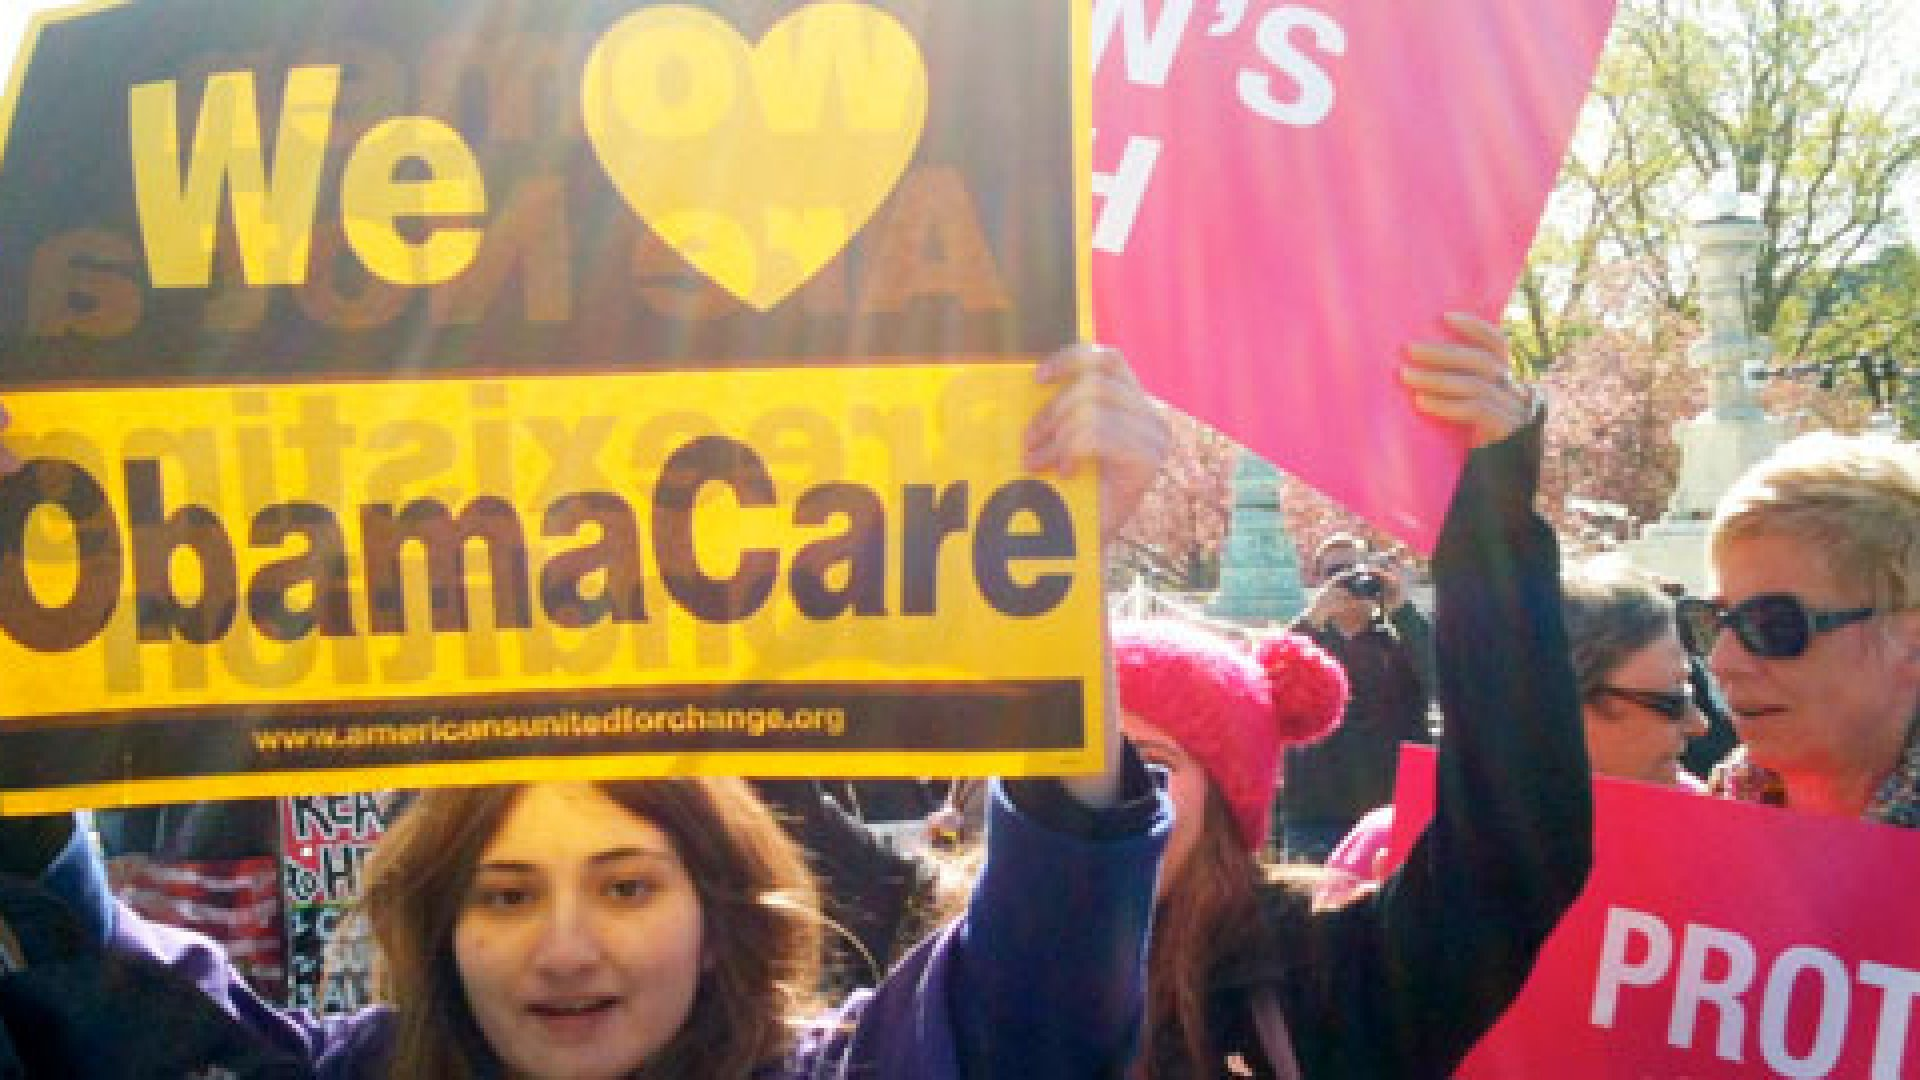 Supporters of the Affordable Care Act rally in front of the U.S. Supreme Court in Washington, D.C., on March 27, 2012.